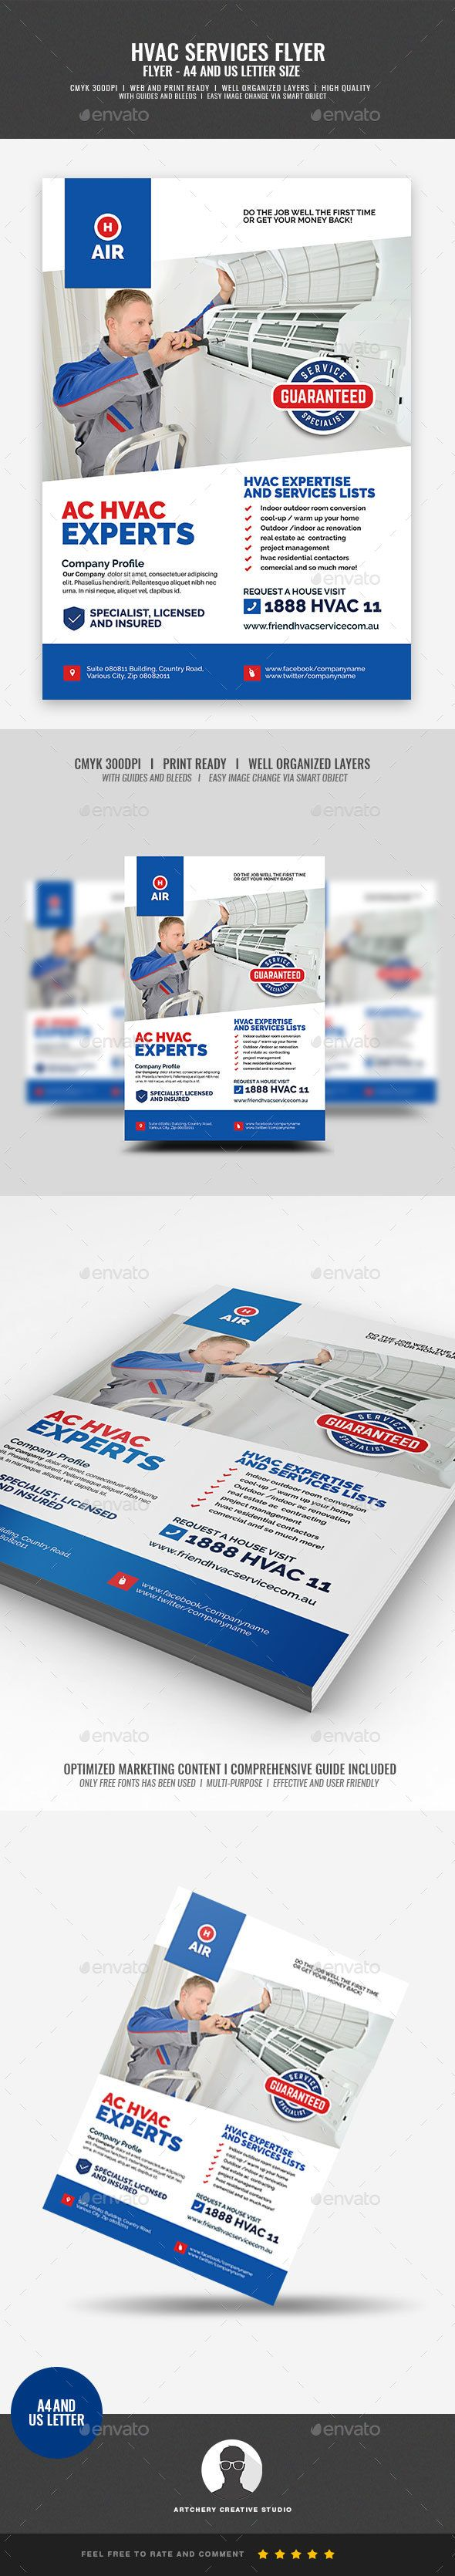 HVAC Repair and Maintenance Flyer Template PSD - A4 and Letter Size